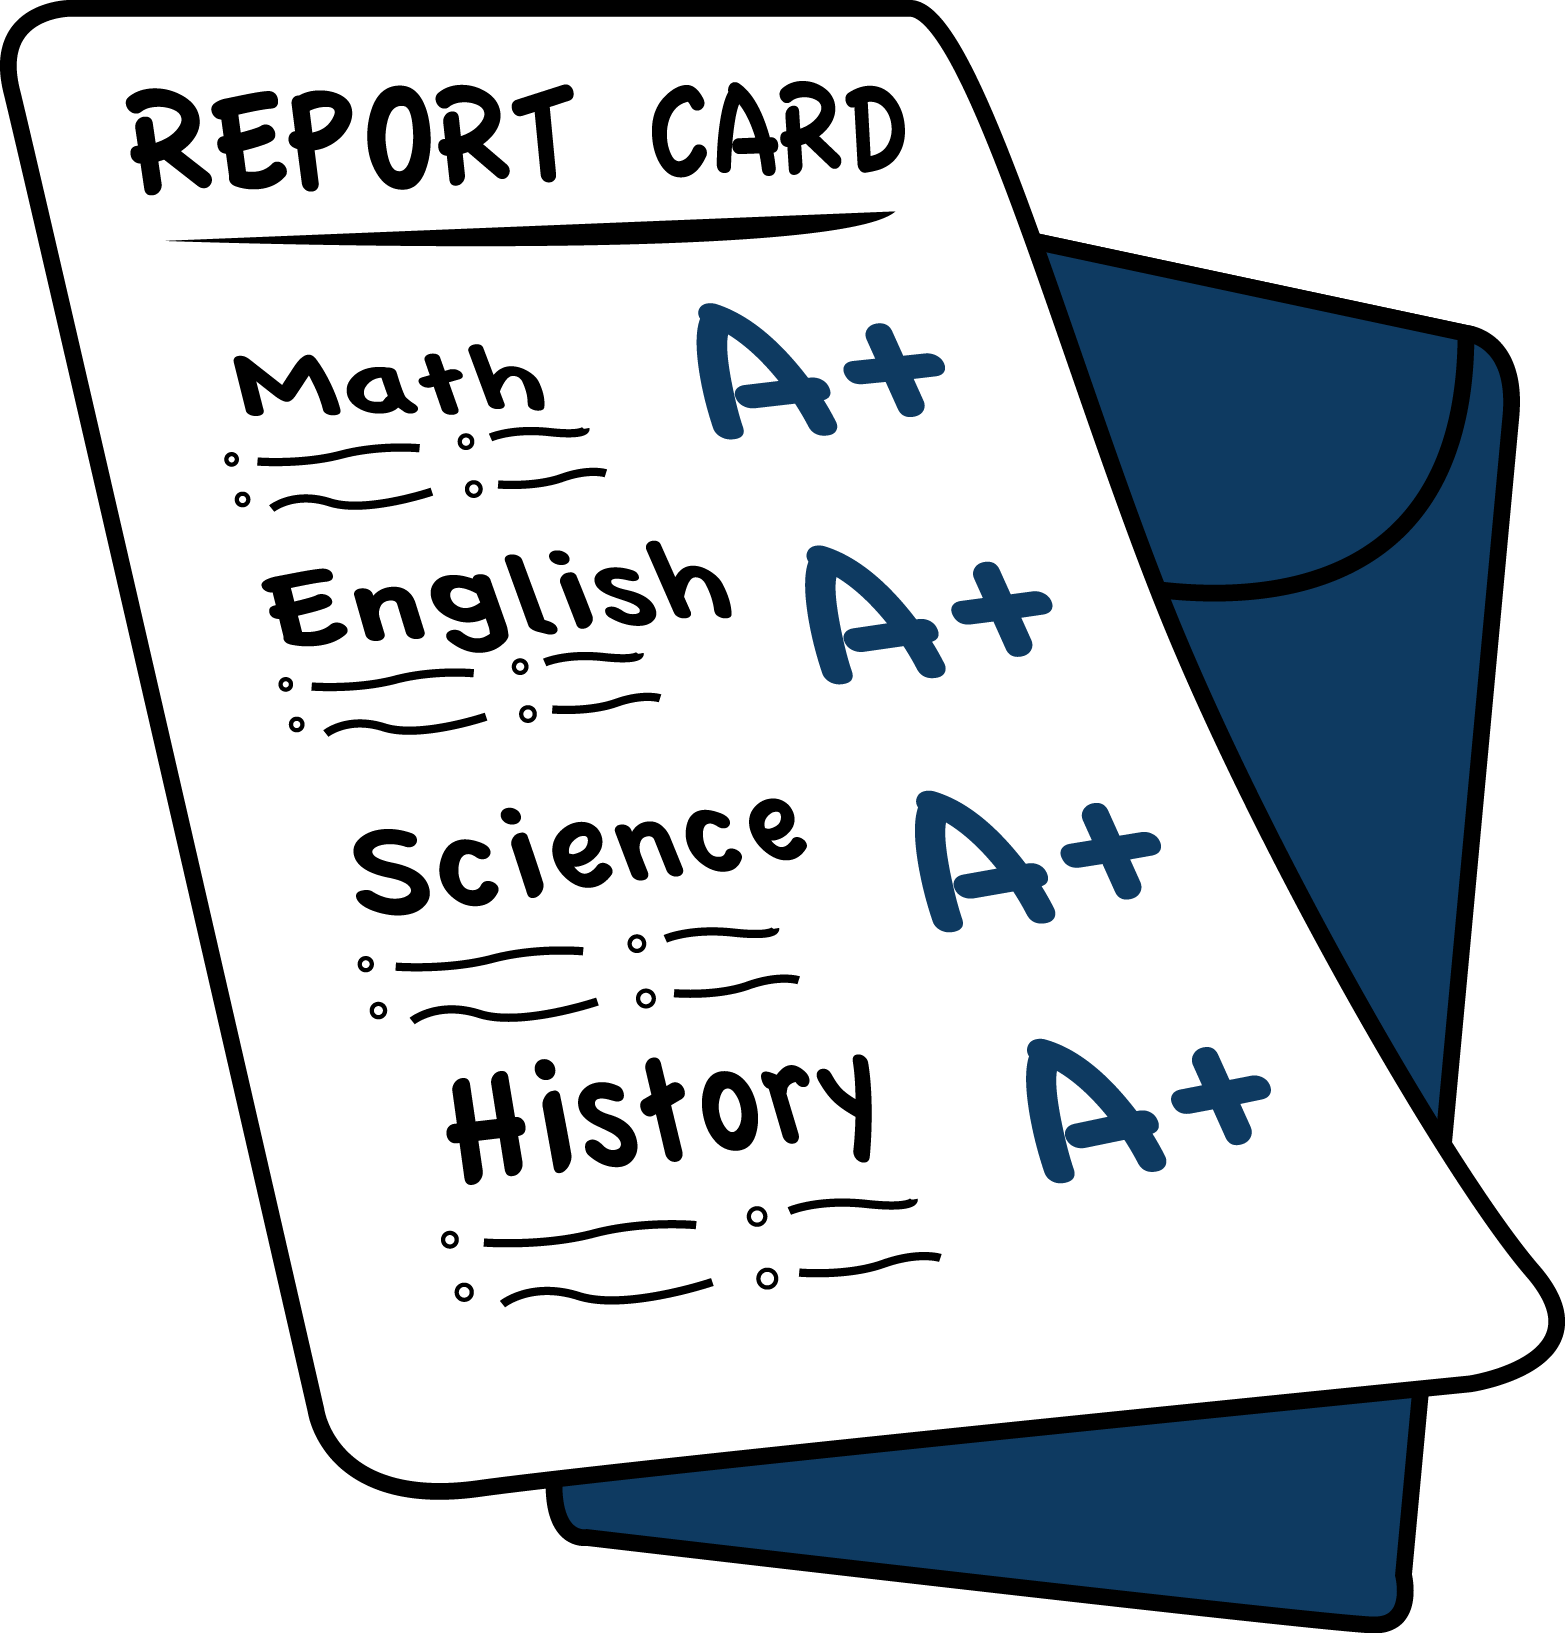 ELECTRONIC Report Cards: Feb. 1 @ 4:00 - Newlonsburg Elementary School png free stock